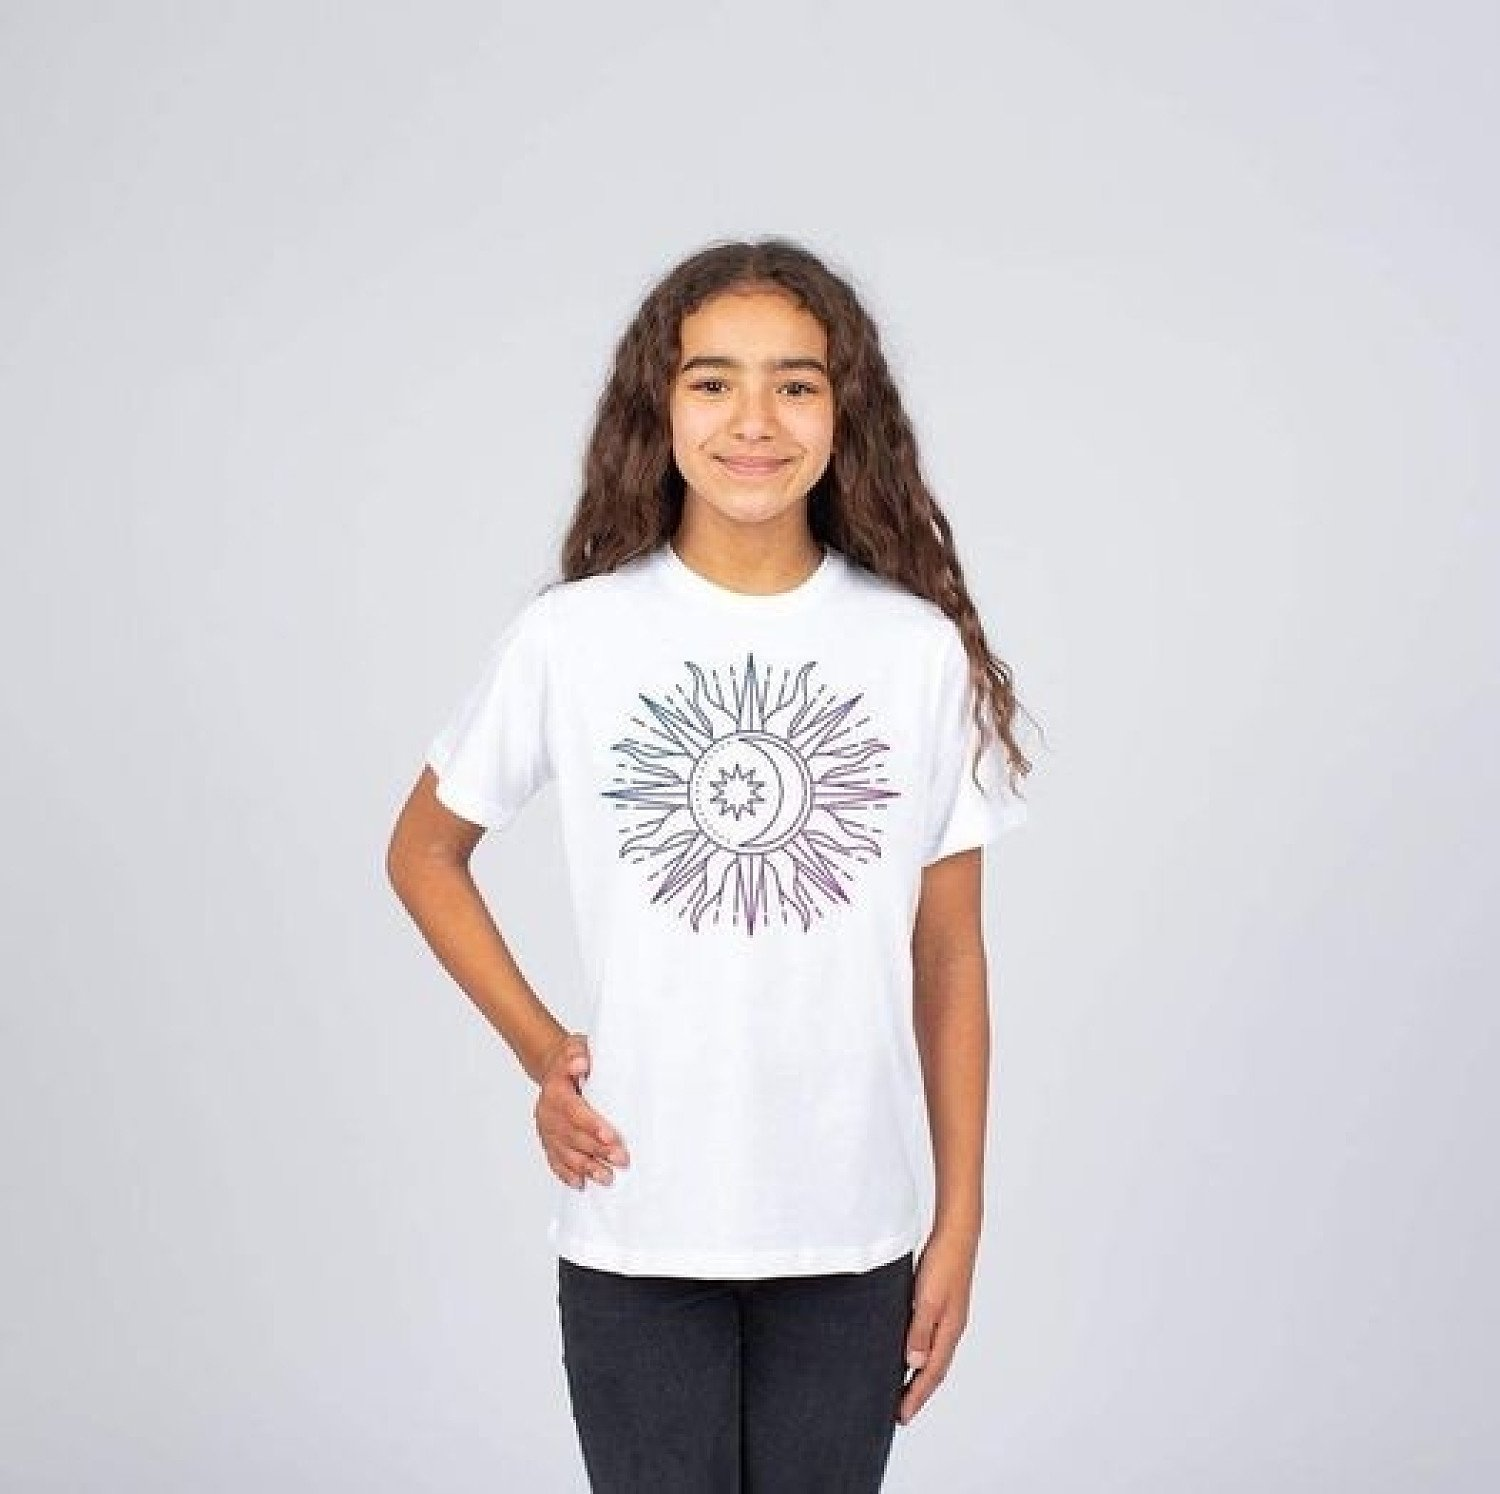 Girls 'Sun Moon Tee' £15